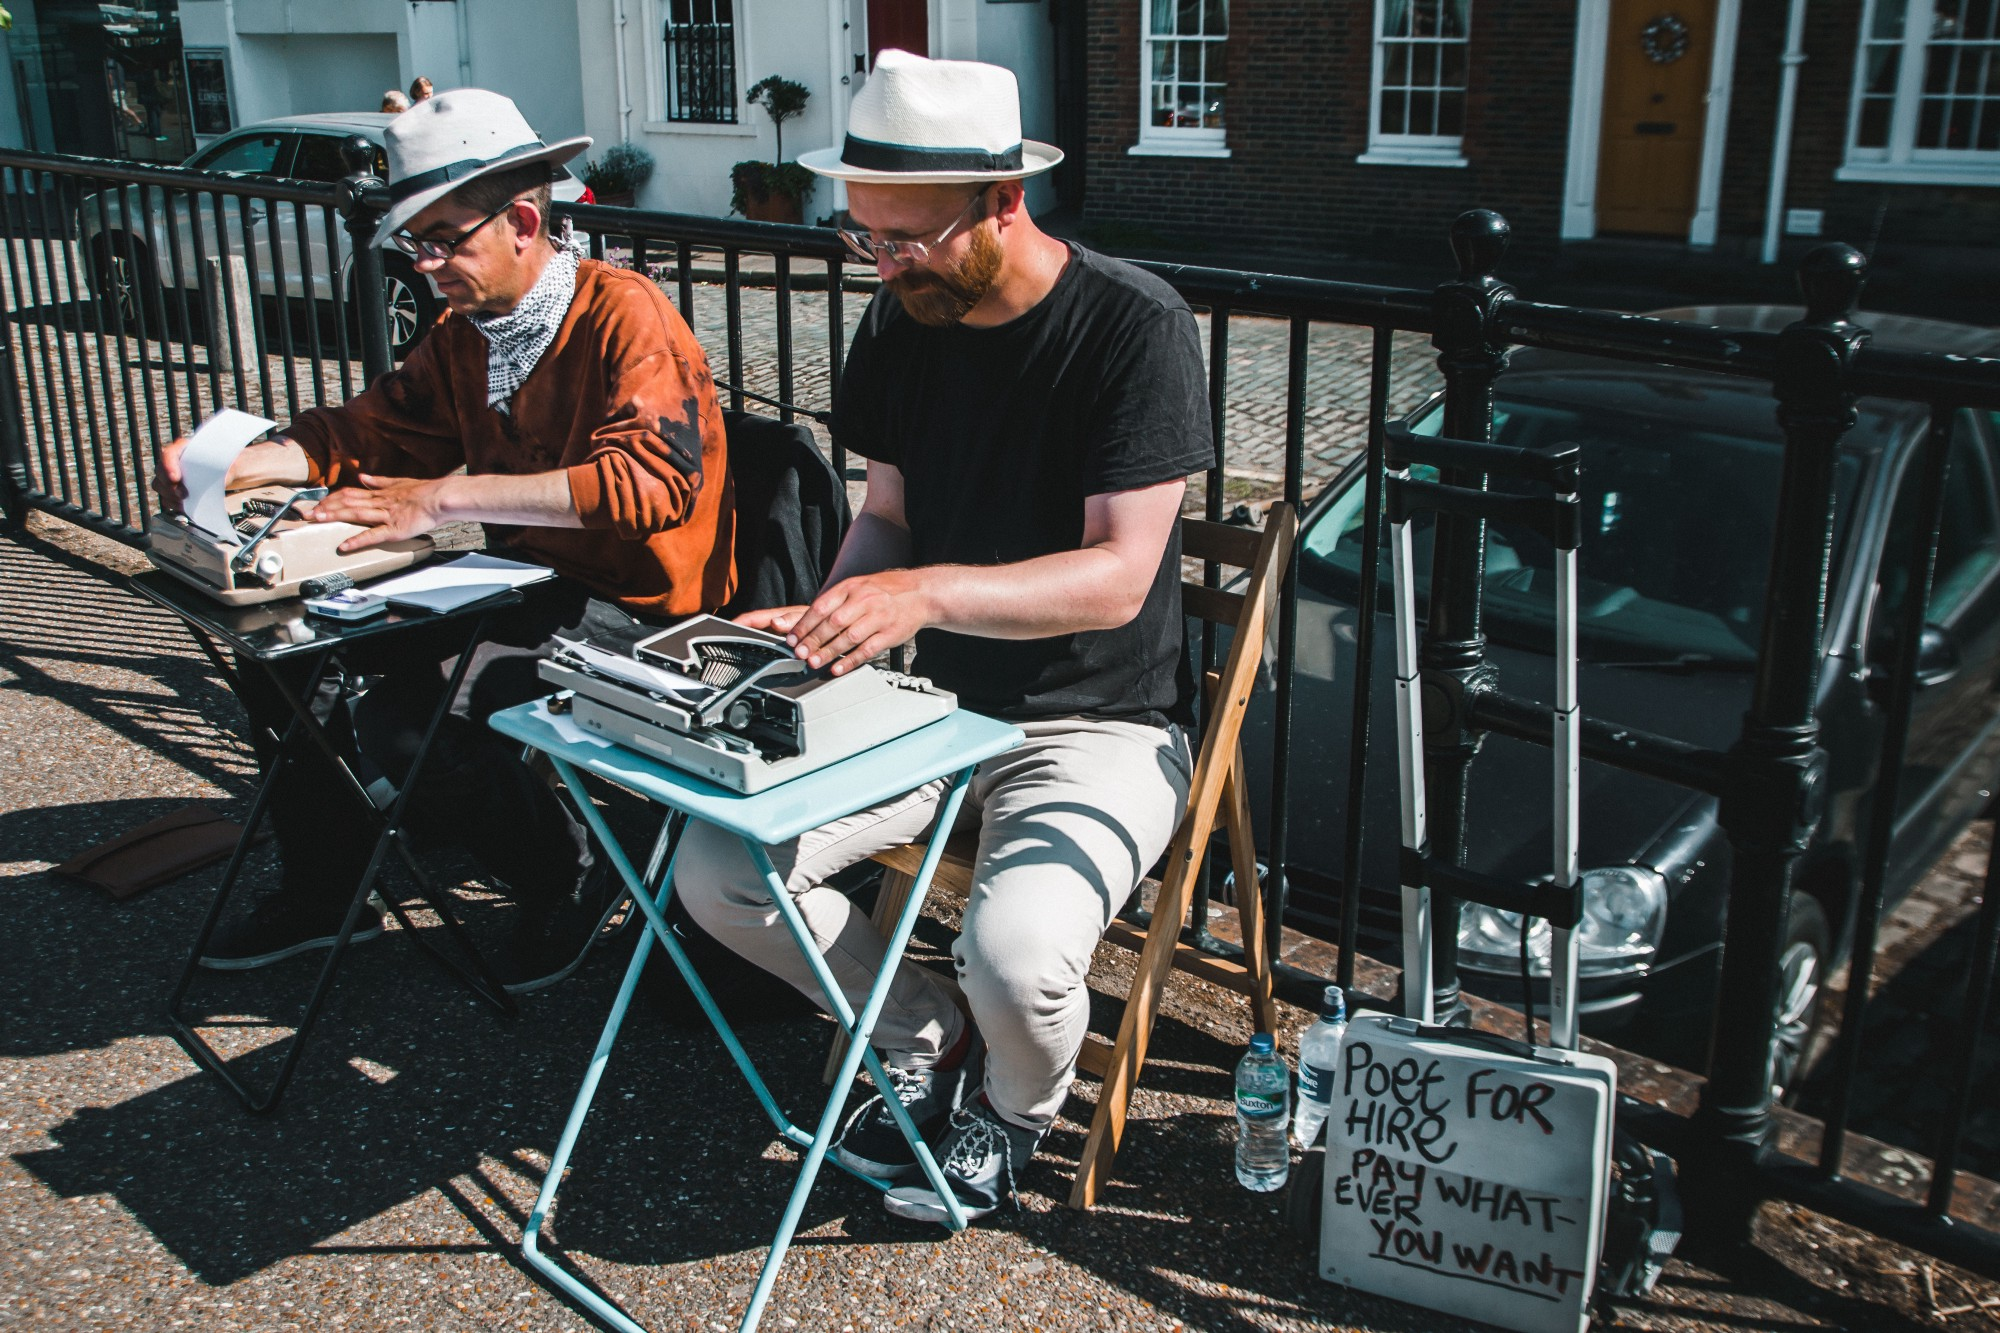 Two street poets in cool hats with their typewriters